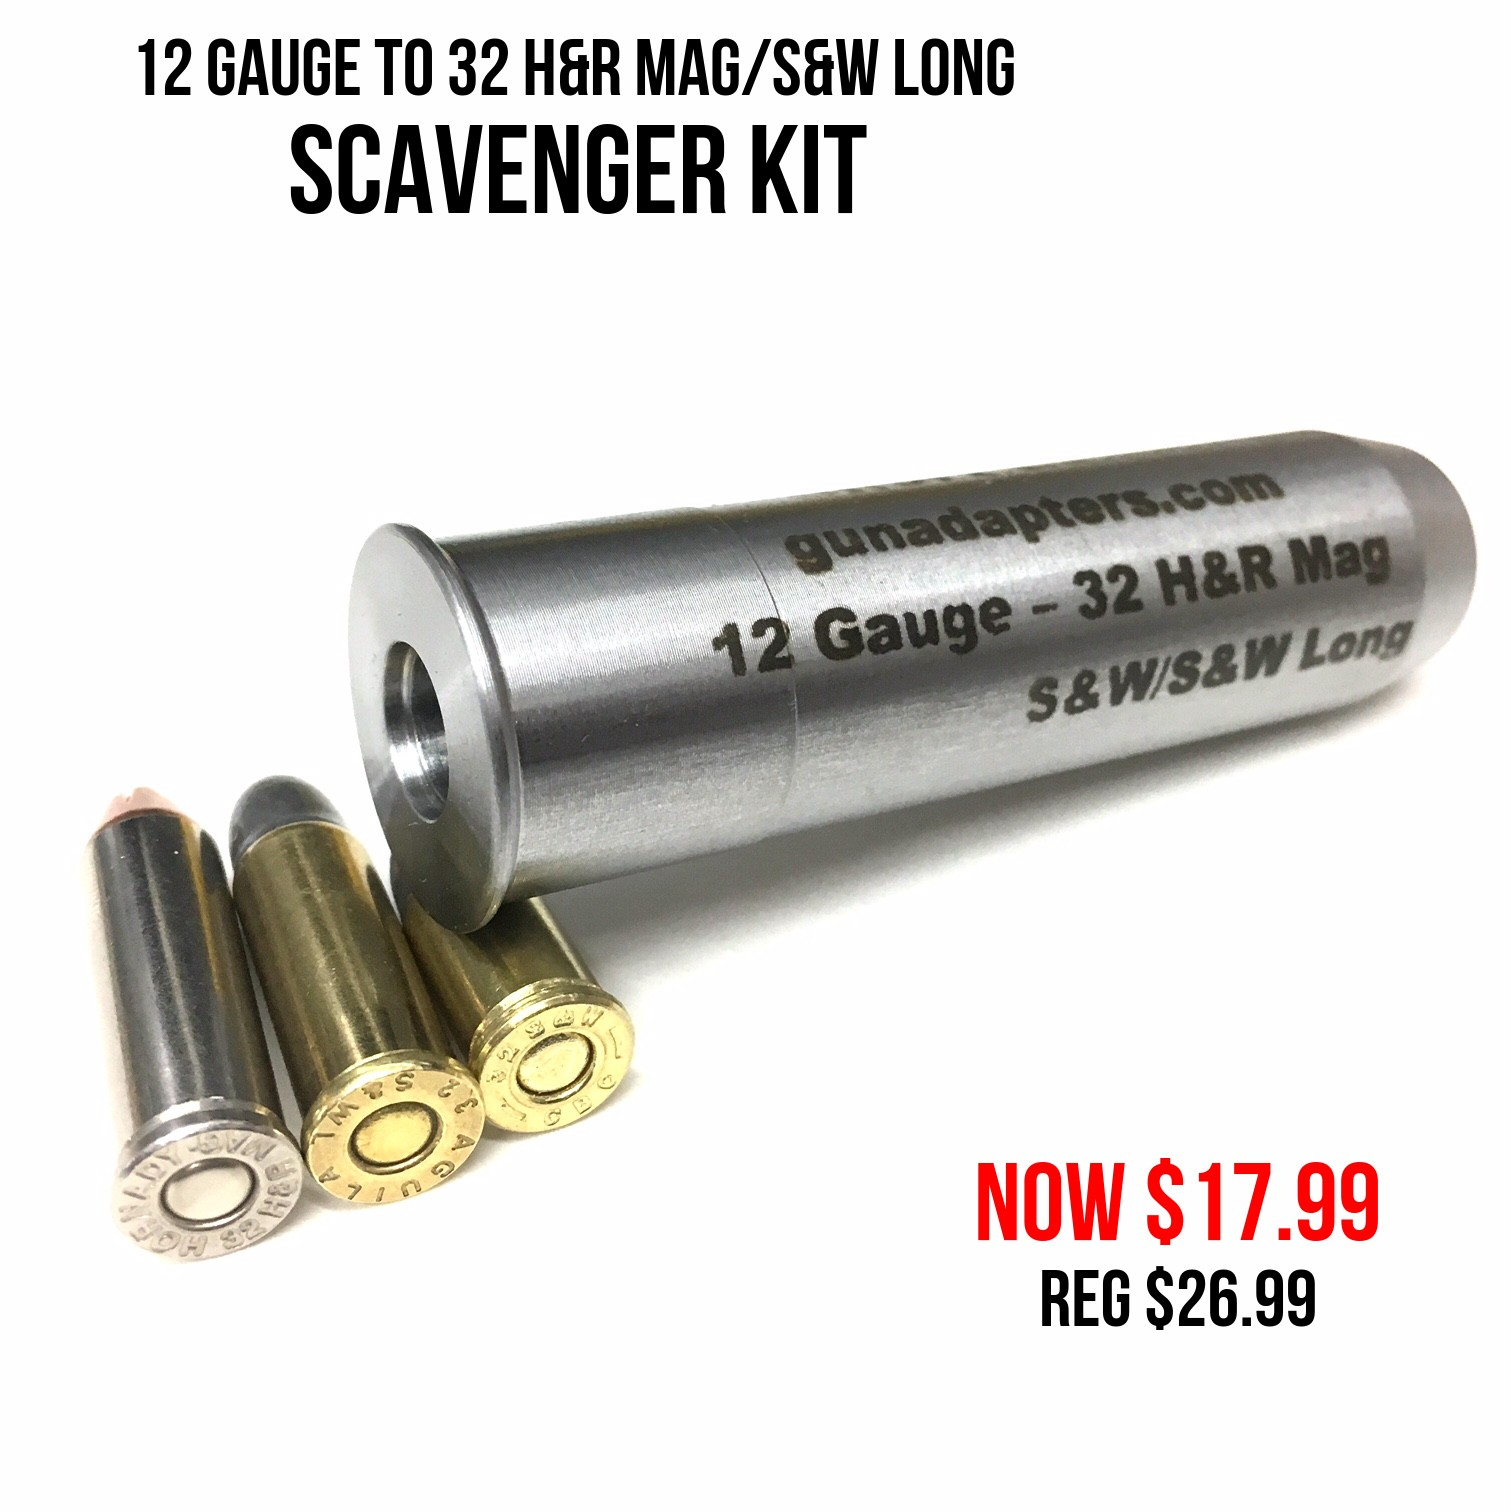 12 Gauge to 32 H&R Mag/S&W Long Now $17.99